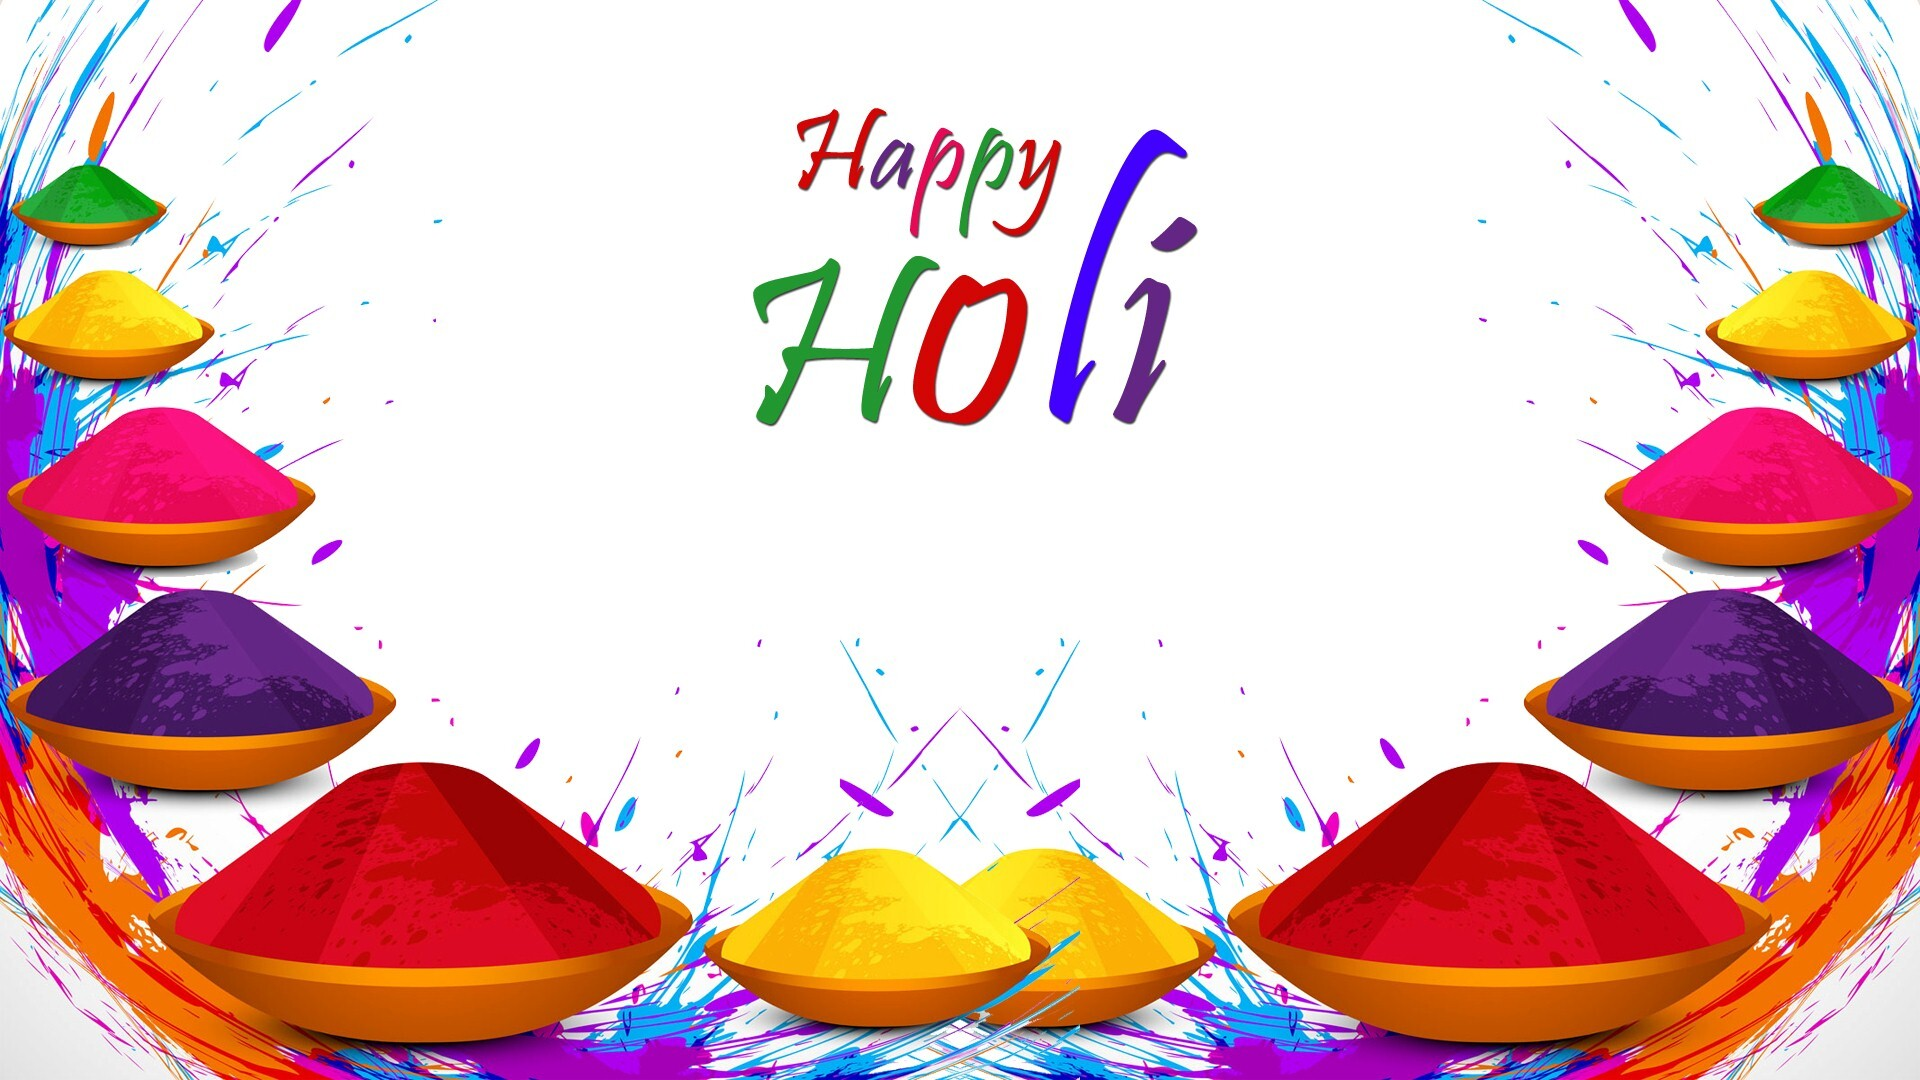 happy holi desktop hd pics | hd wallpapers